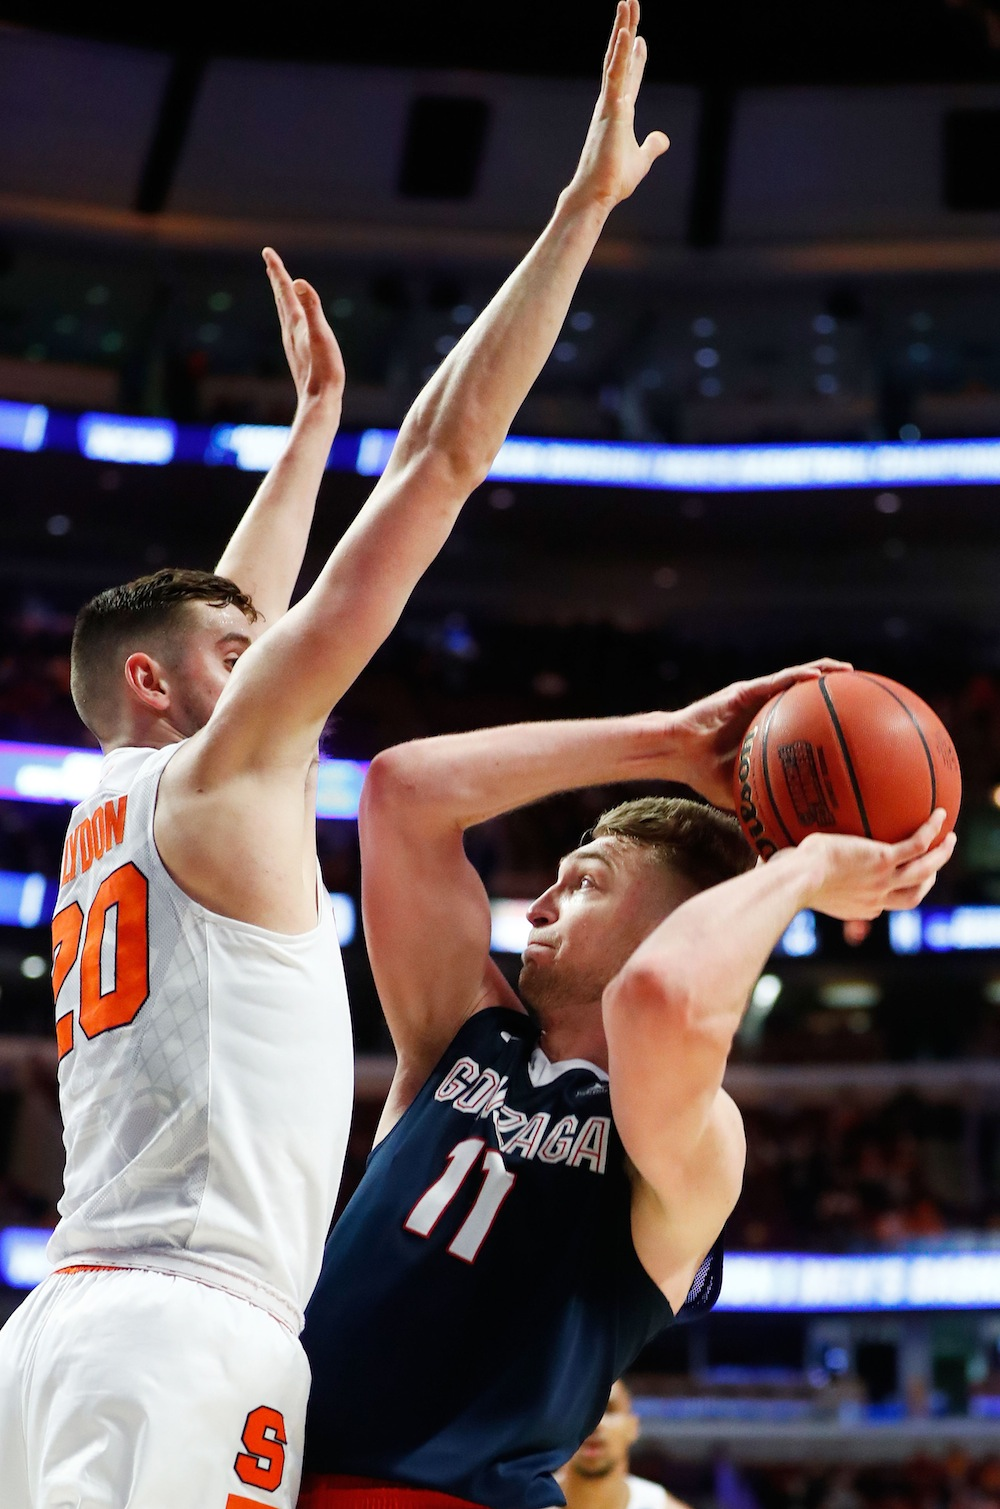 With 22 seconds to go, Michael Gbinije followed his own miss with a layup to put Syracuse up by one over Gonzaga. Later, with four seconds to go, Zags guard Josh Perkins drove and put up a floater to win, but it was rejected by Syracuse forward Tyler Lydon, who already had five blocks that day. Syracuse won 63–60 and moved on to the Elite Eight despite giving up a combined 42 points to Gonzaga's Kyle Wiltjer and Domantas Sabonis.